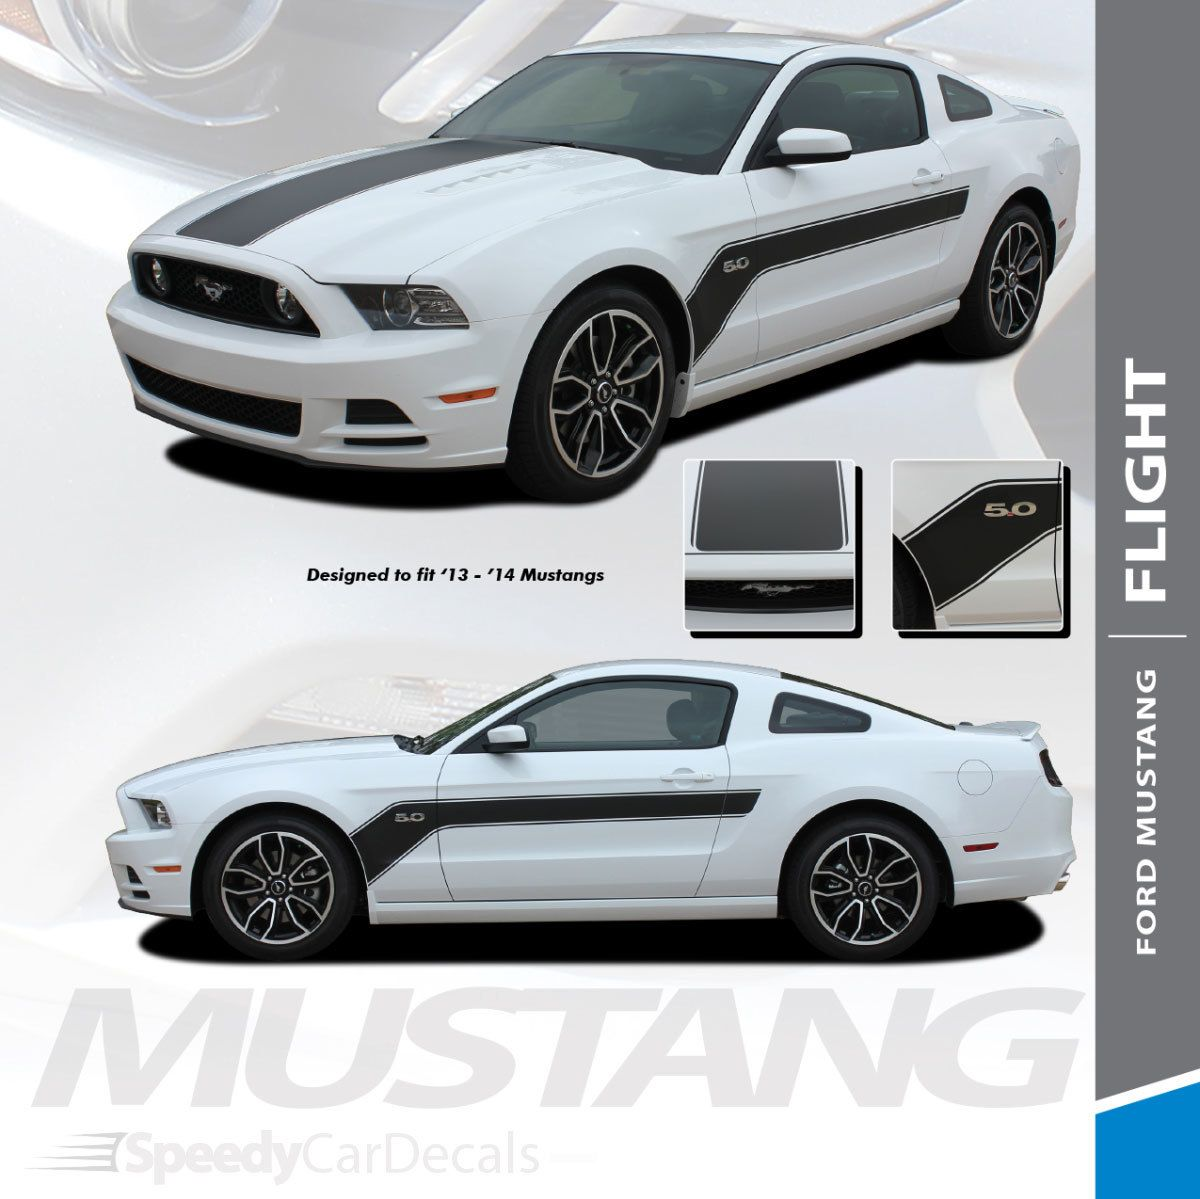 2013 2014 Ford Mustang Hood And Side Decals Stripes Flight Premium Auto Vinyl Decals Ford Mustang Volkswagen Polo Gti Vinyl For Cars [ 1199 x 1200 Pixel ]